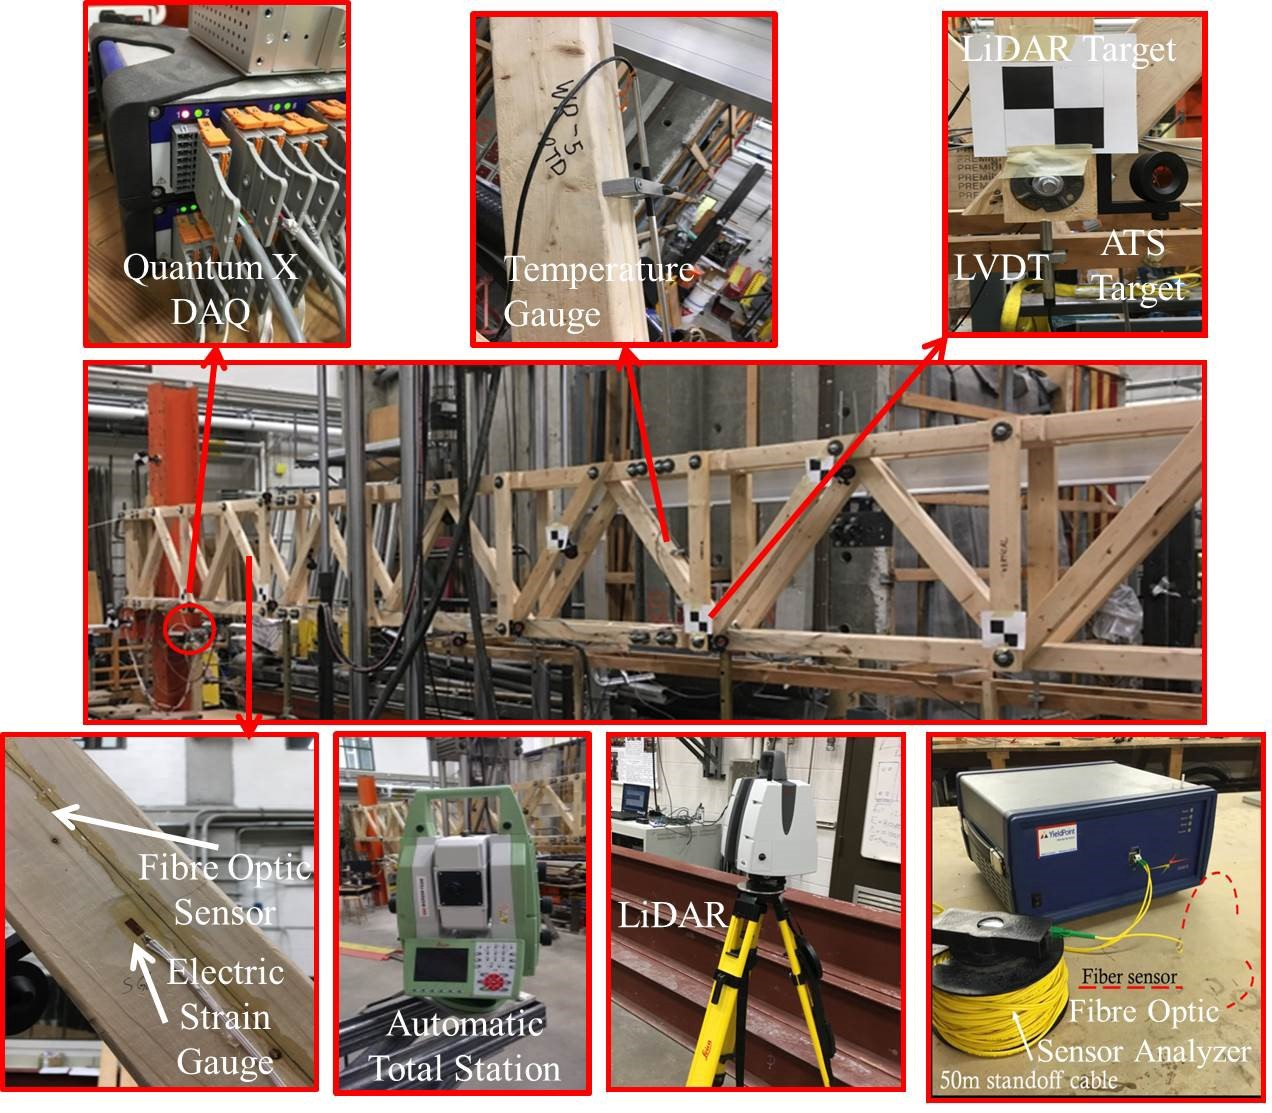 A close-up of the truss. Inset photos of testing euiqment point to area of the truss where that equipment was tested.